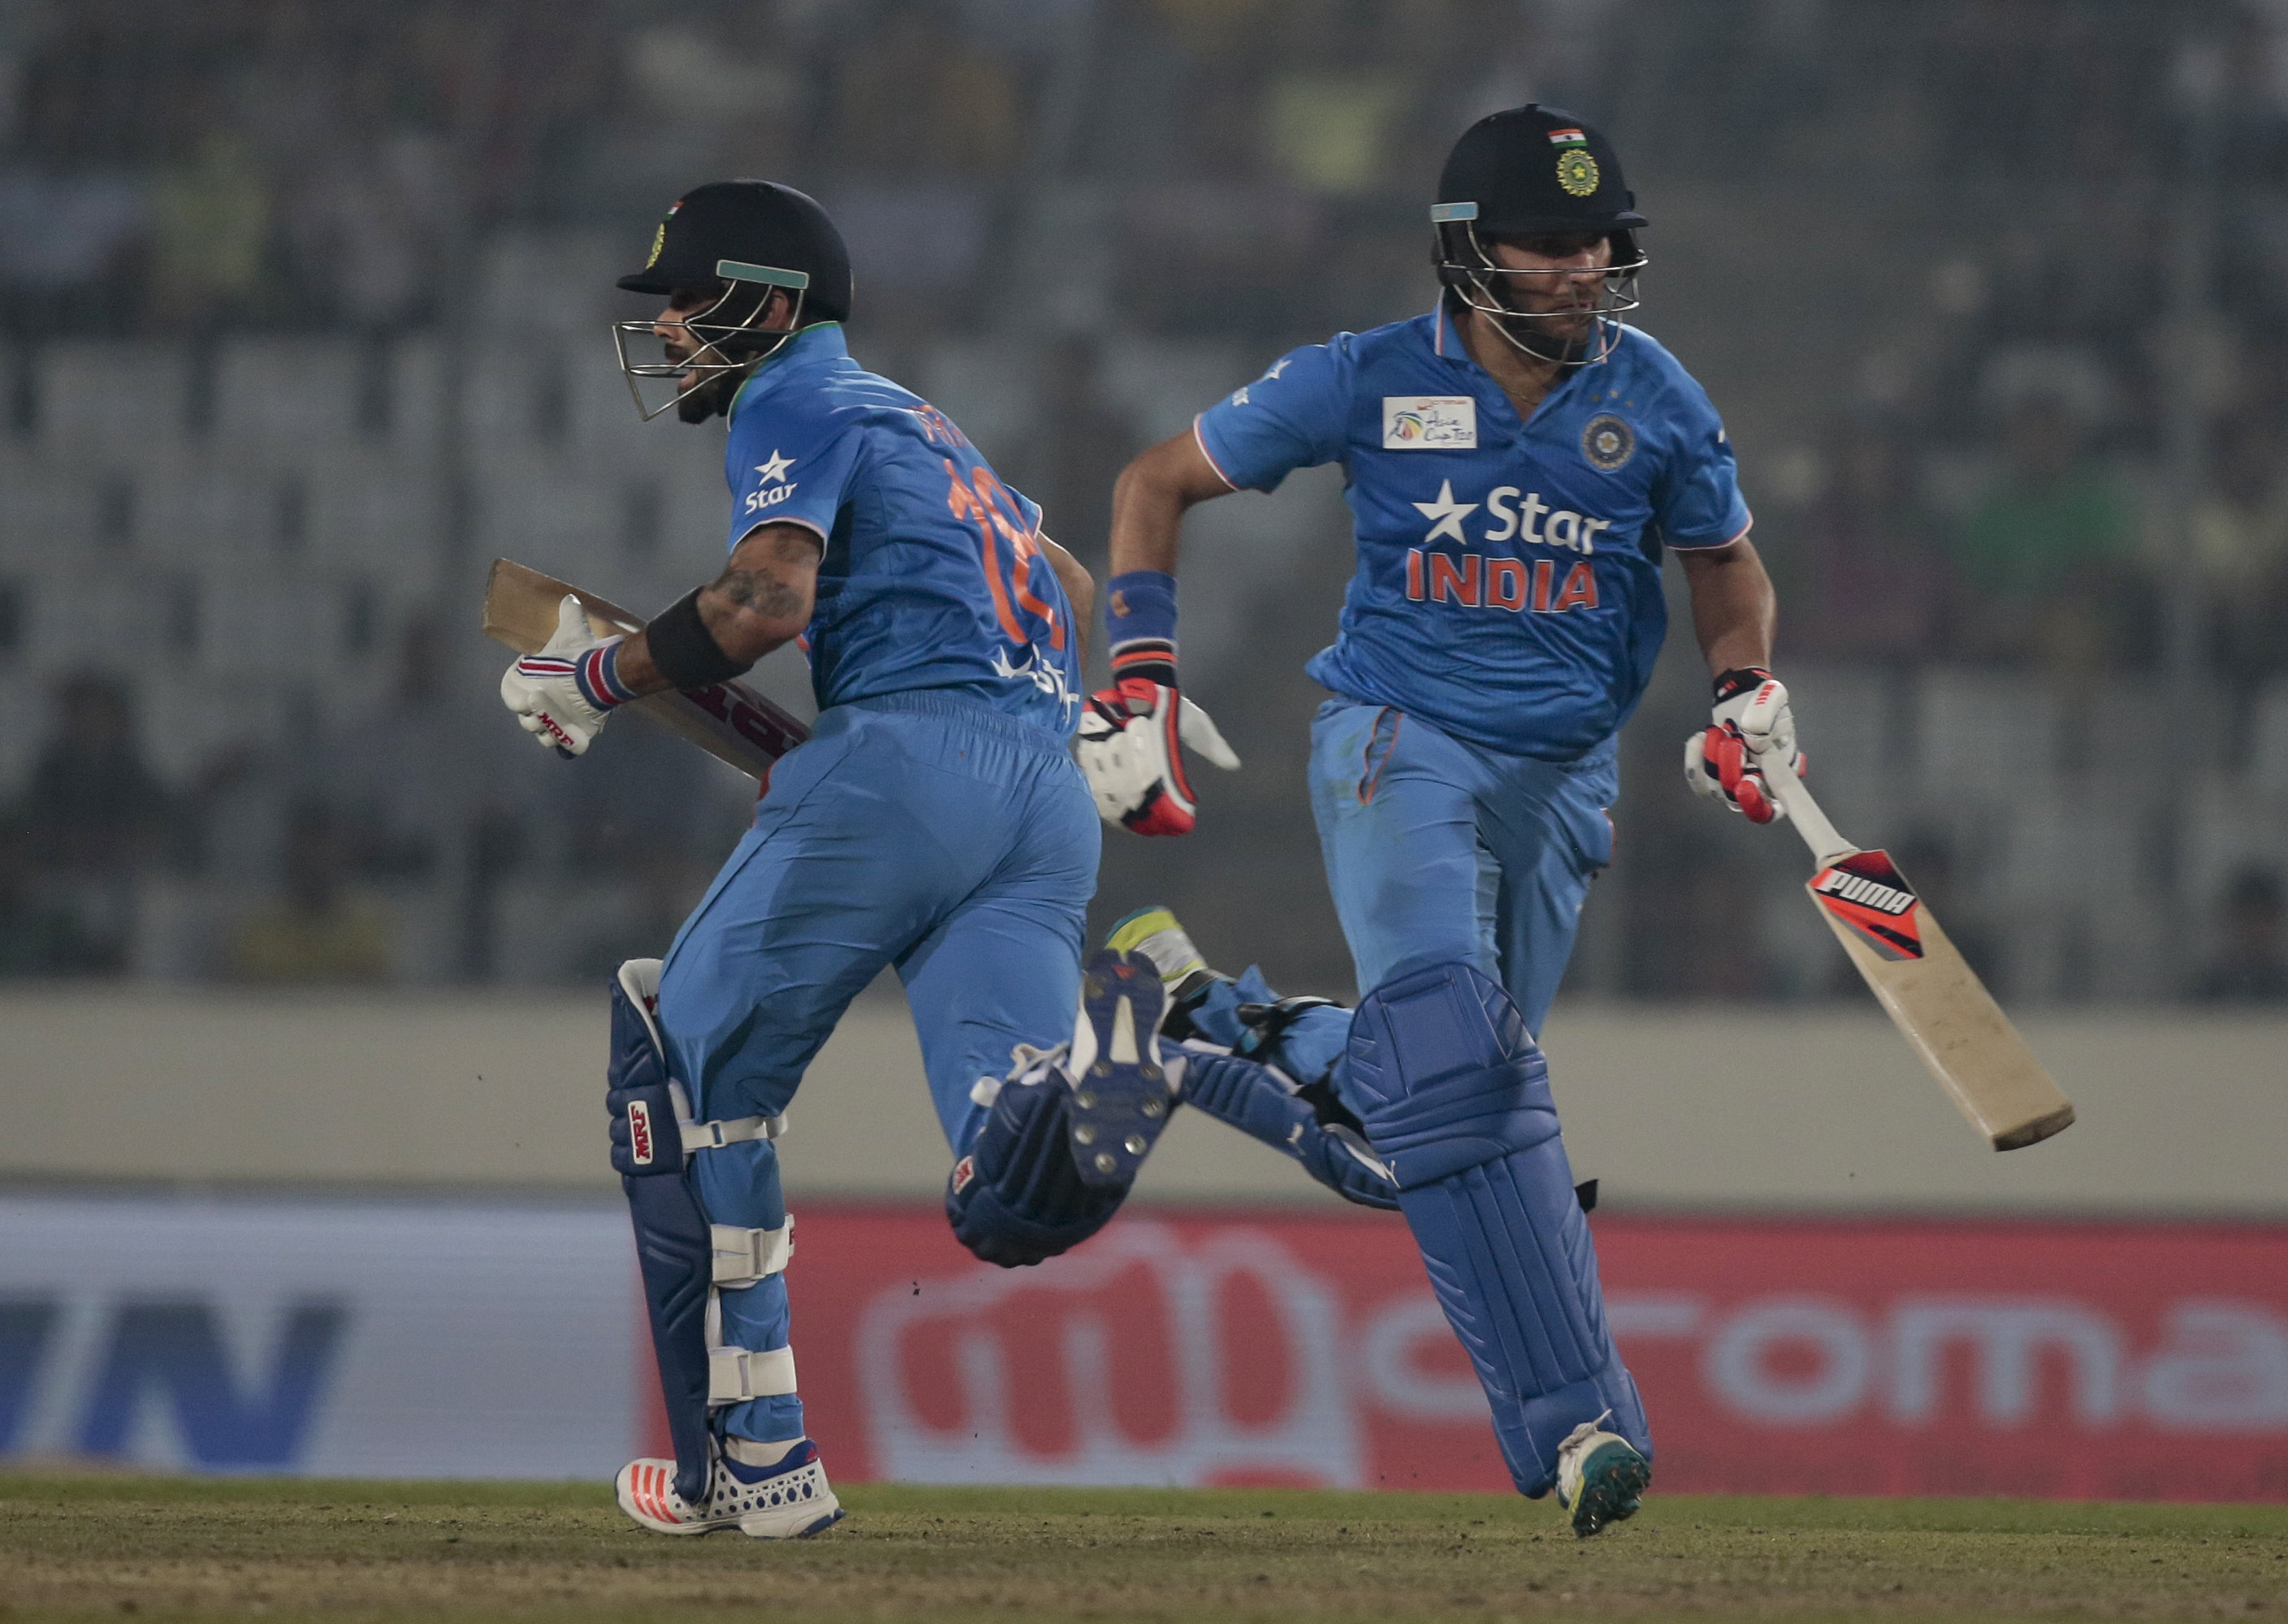 asia cup cricket 2018-7-16 the first edition of the rothmans asia cup was held in 1984 in sharjah, uae, the location of the headquarters of the newly formed asian cricket councilthe tournament was a round-robin tournament among india, sri lanka and pakistan.